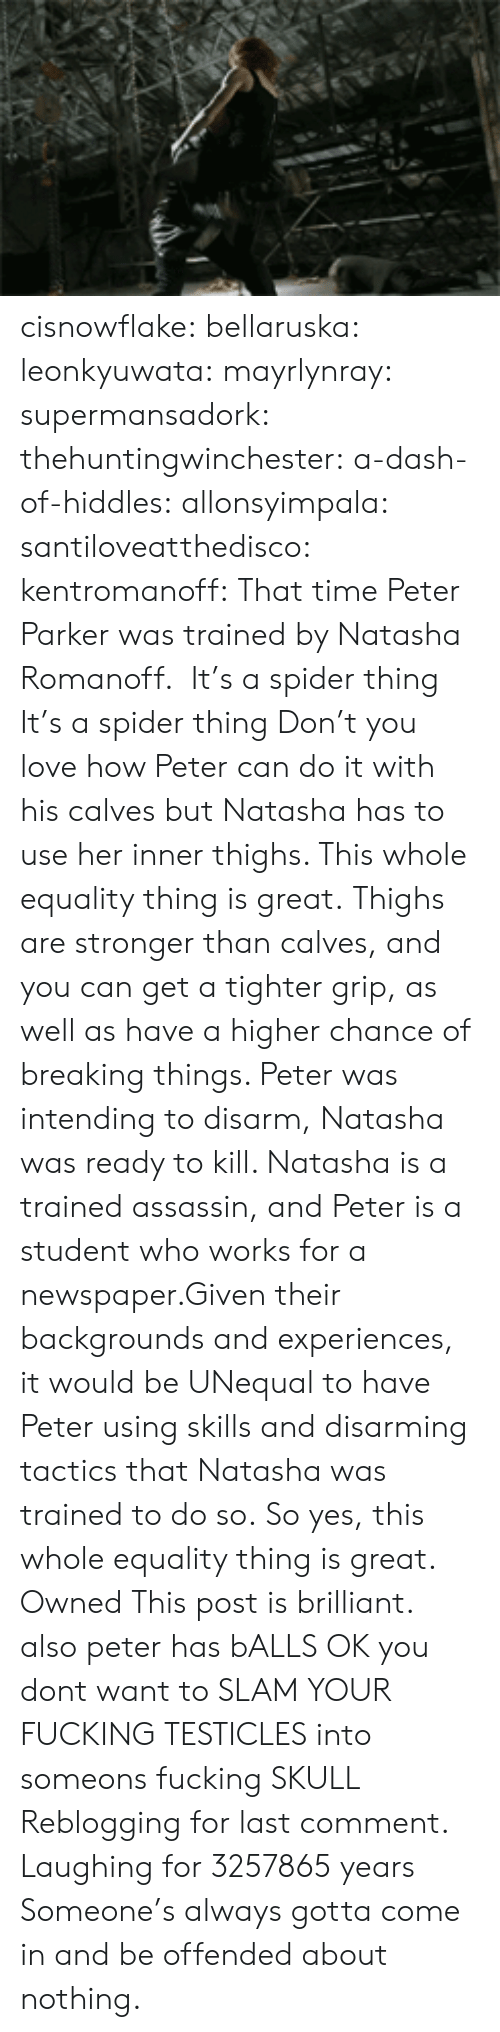 Fucking, Love, and Spider: cisnowflake:  bellaruska:  leonkyuwata:  mayrlynray:  supermansadork:  thehuntingwinchester:  a-dash-of-hiddles:  allonsyimpala:  santiloveatthedisco:  kentromanoff:  That time Peter Parker was trained by Natasha Romanoff.   It's a spider thing  It's a spider thing  Don't you love how Peter can do it with his calves but Natasha has to use her inner thighs. This whole equality thing is great.  Thighs are stronger than calves, and you can get a tighter grip, as well as have a higher chance of breaking things. Peter was intending to disarm, Natasha was ready to kill. Natasha is a trained assassin, and Peter is a student who works for a newspaper.Given their backgrounds and experiences, it would be UNequal to have Peter using skills and disarming tactics that Natasha was trained to do so. So yes, this whole equality thing is great.  Owned  This post is brilliant.  also peter has bALLS OK you dont want to SLAM YOUR FUCKING TESTICLES into someons fucking SKULL   Reblogging for last comment. Laughing for 3257865 years   Someone's always gotta come in and be offended about nothing.